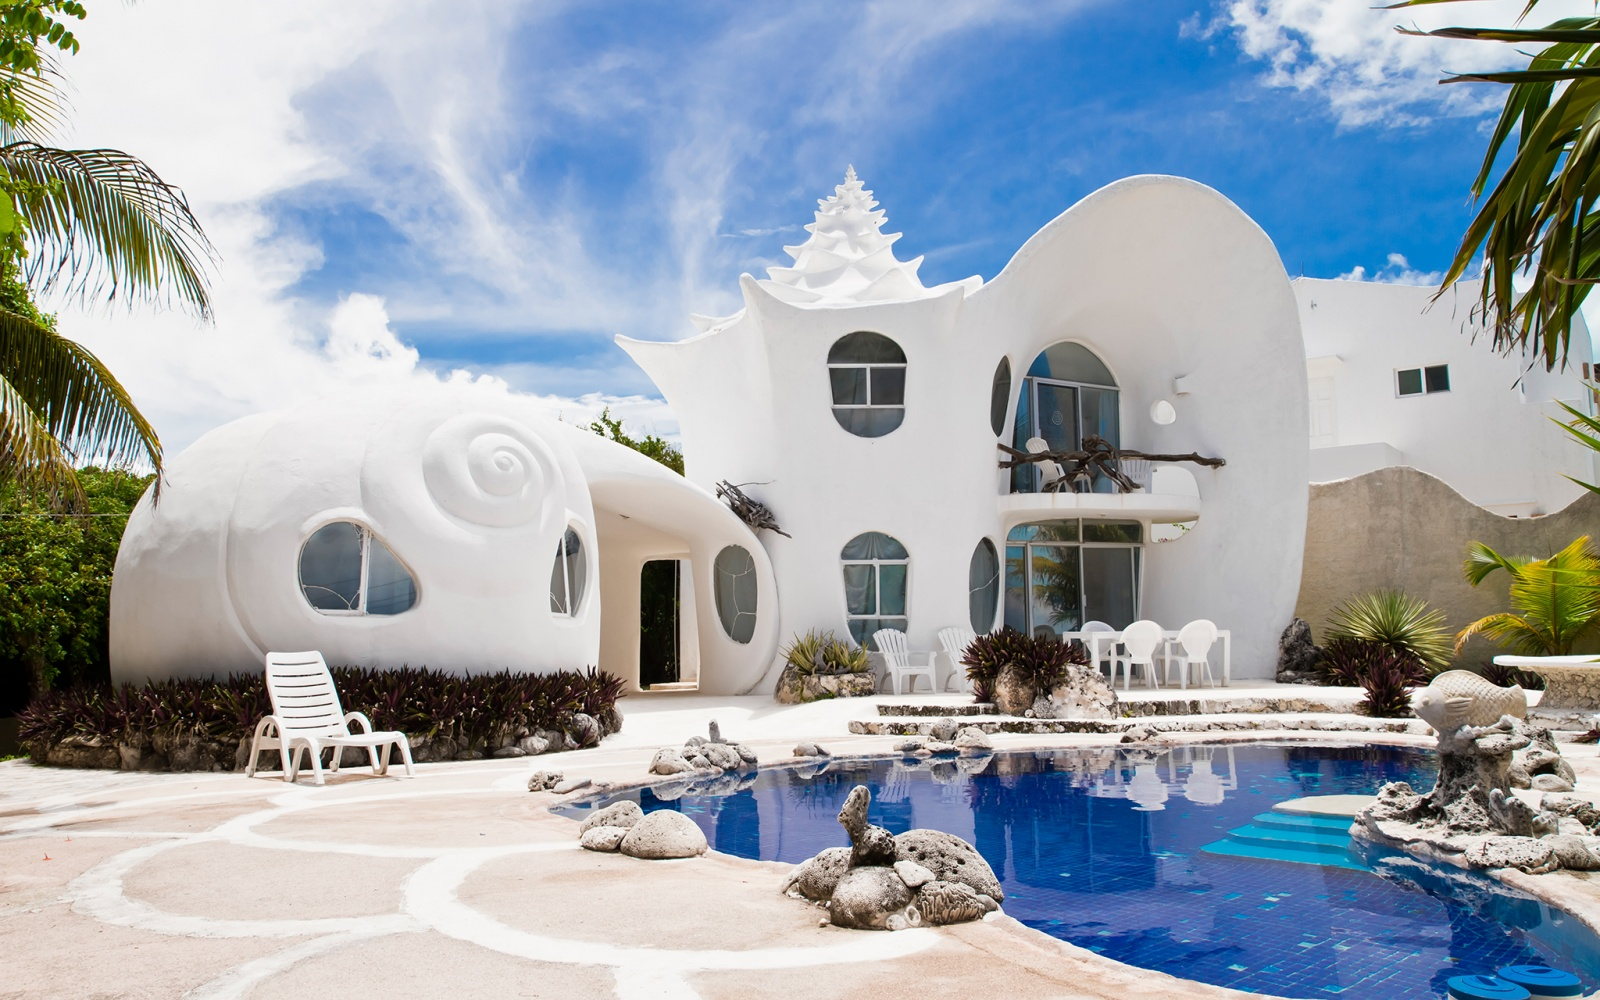 Seashell House, Airbnb